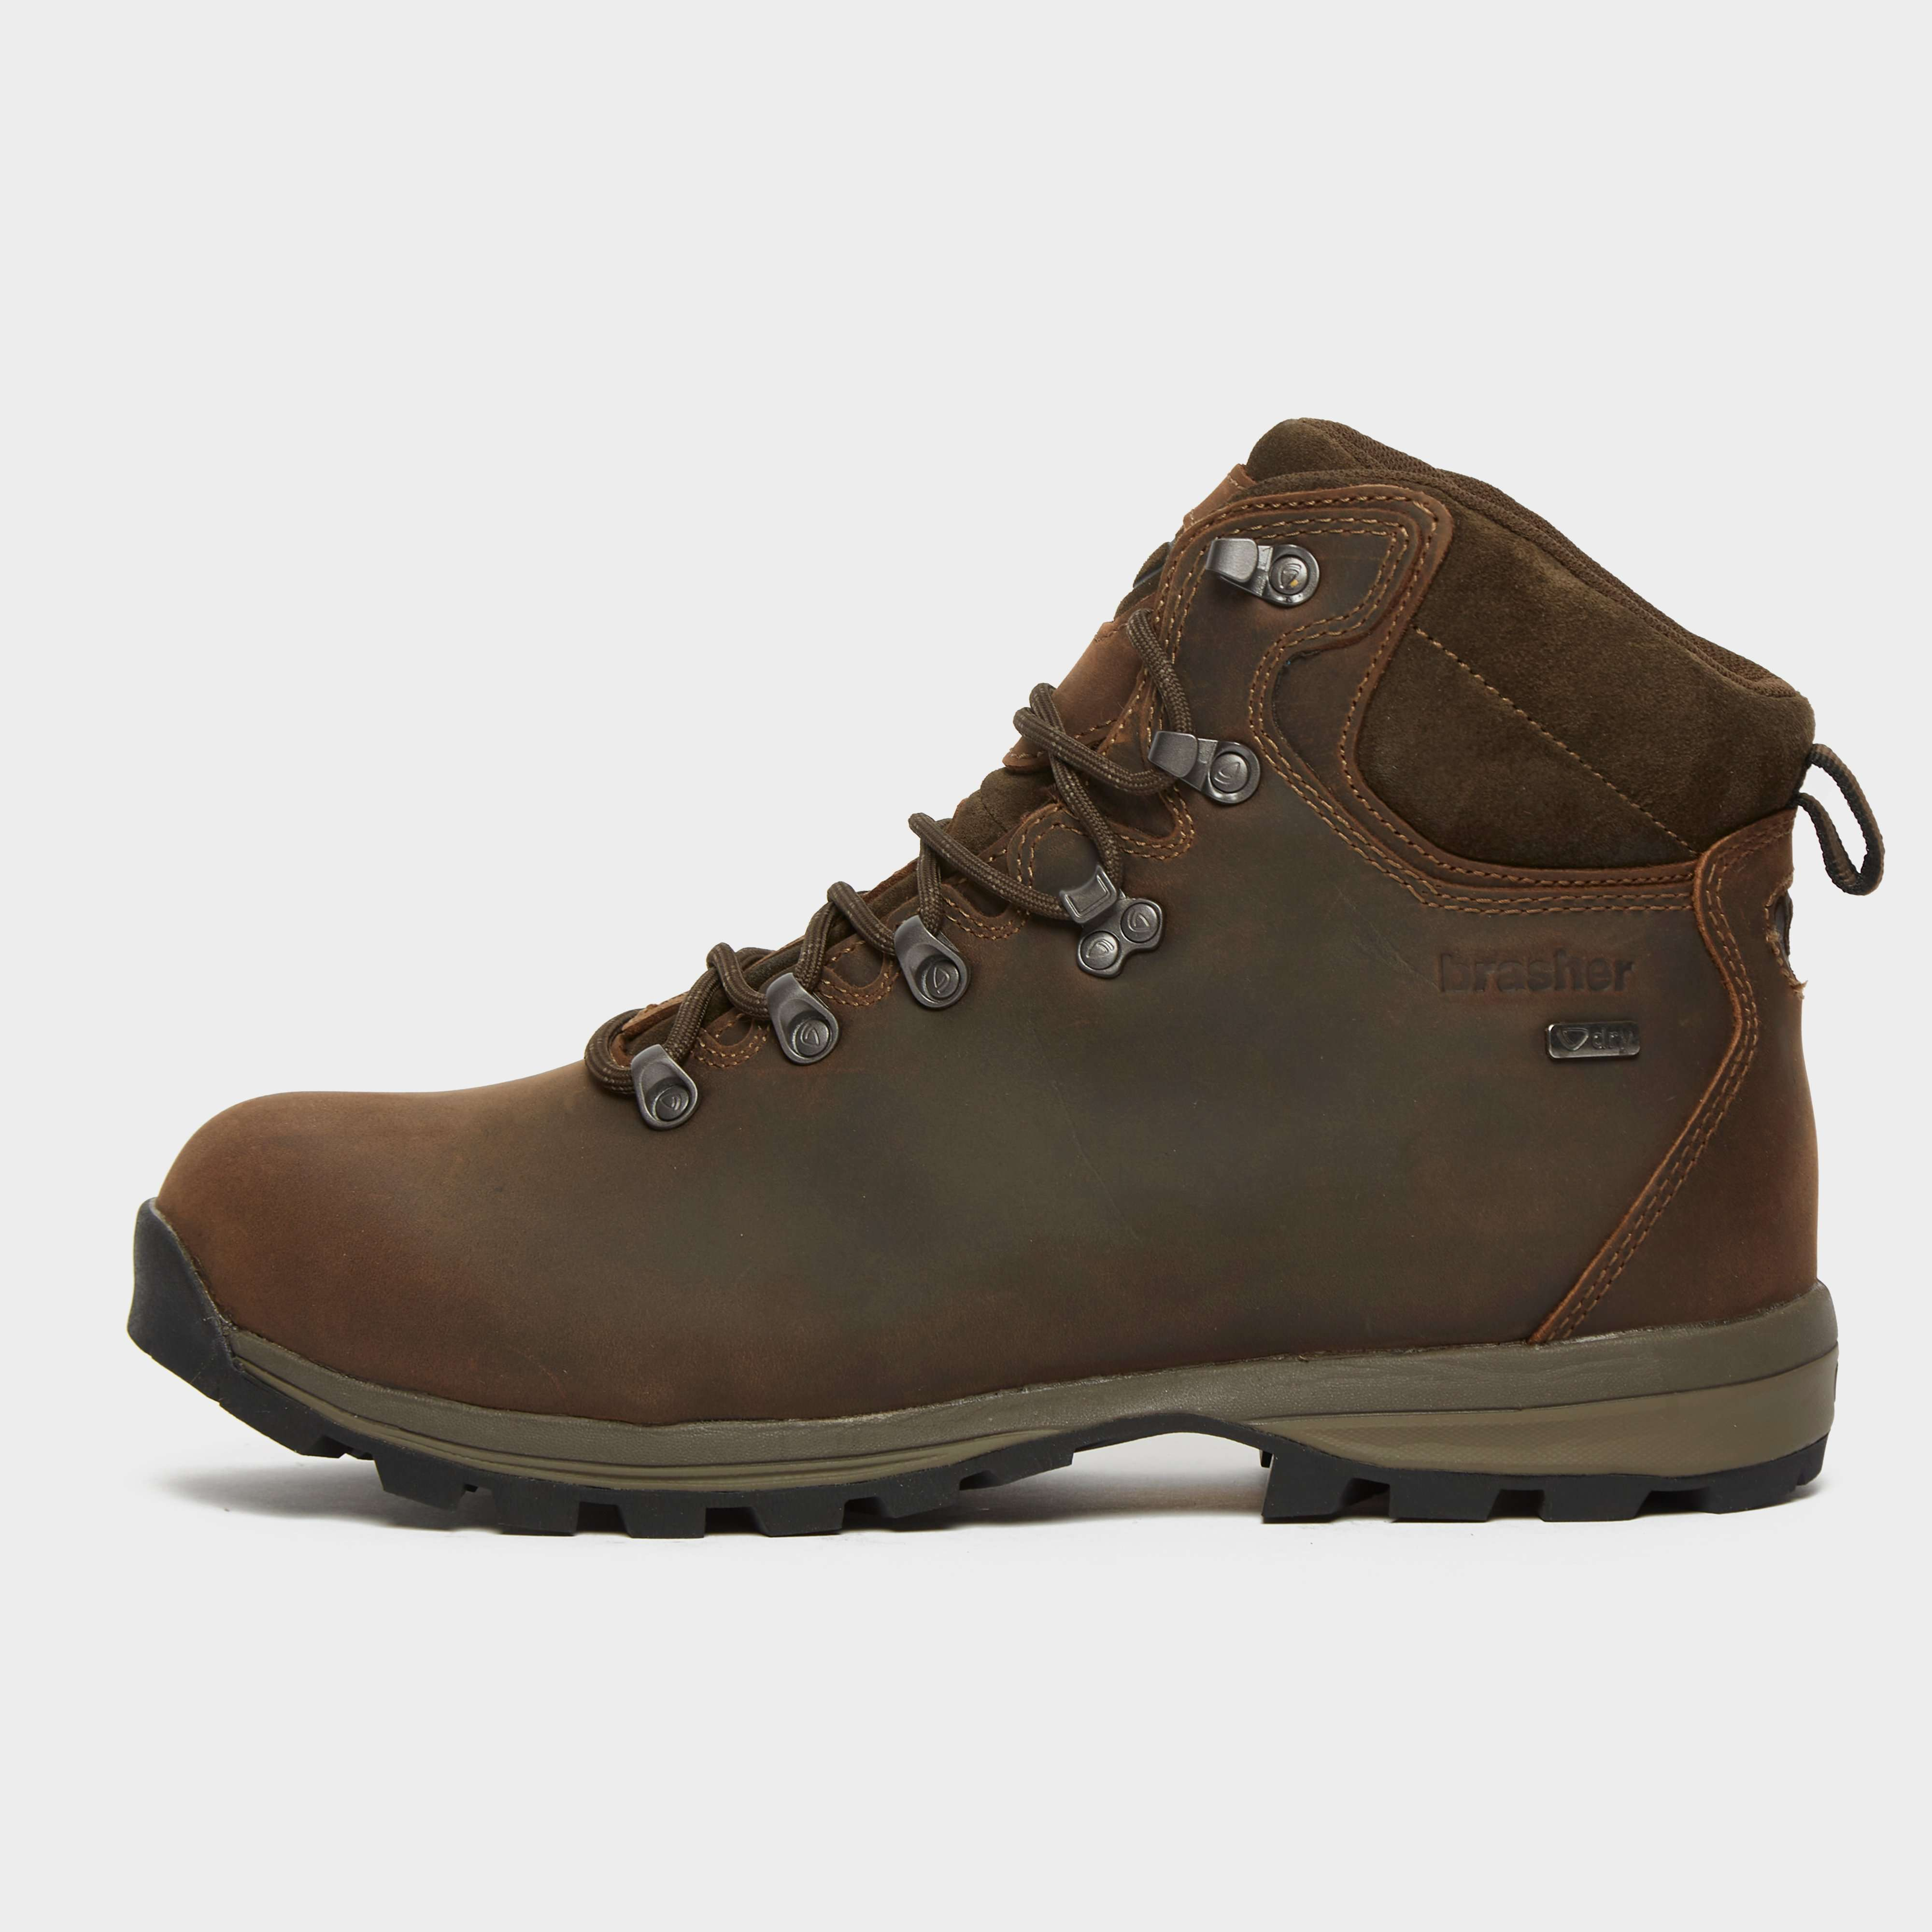 BRASHER Men's Country Walker Walking Boots